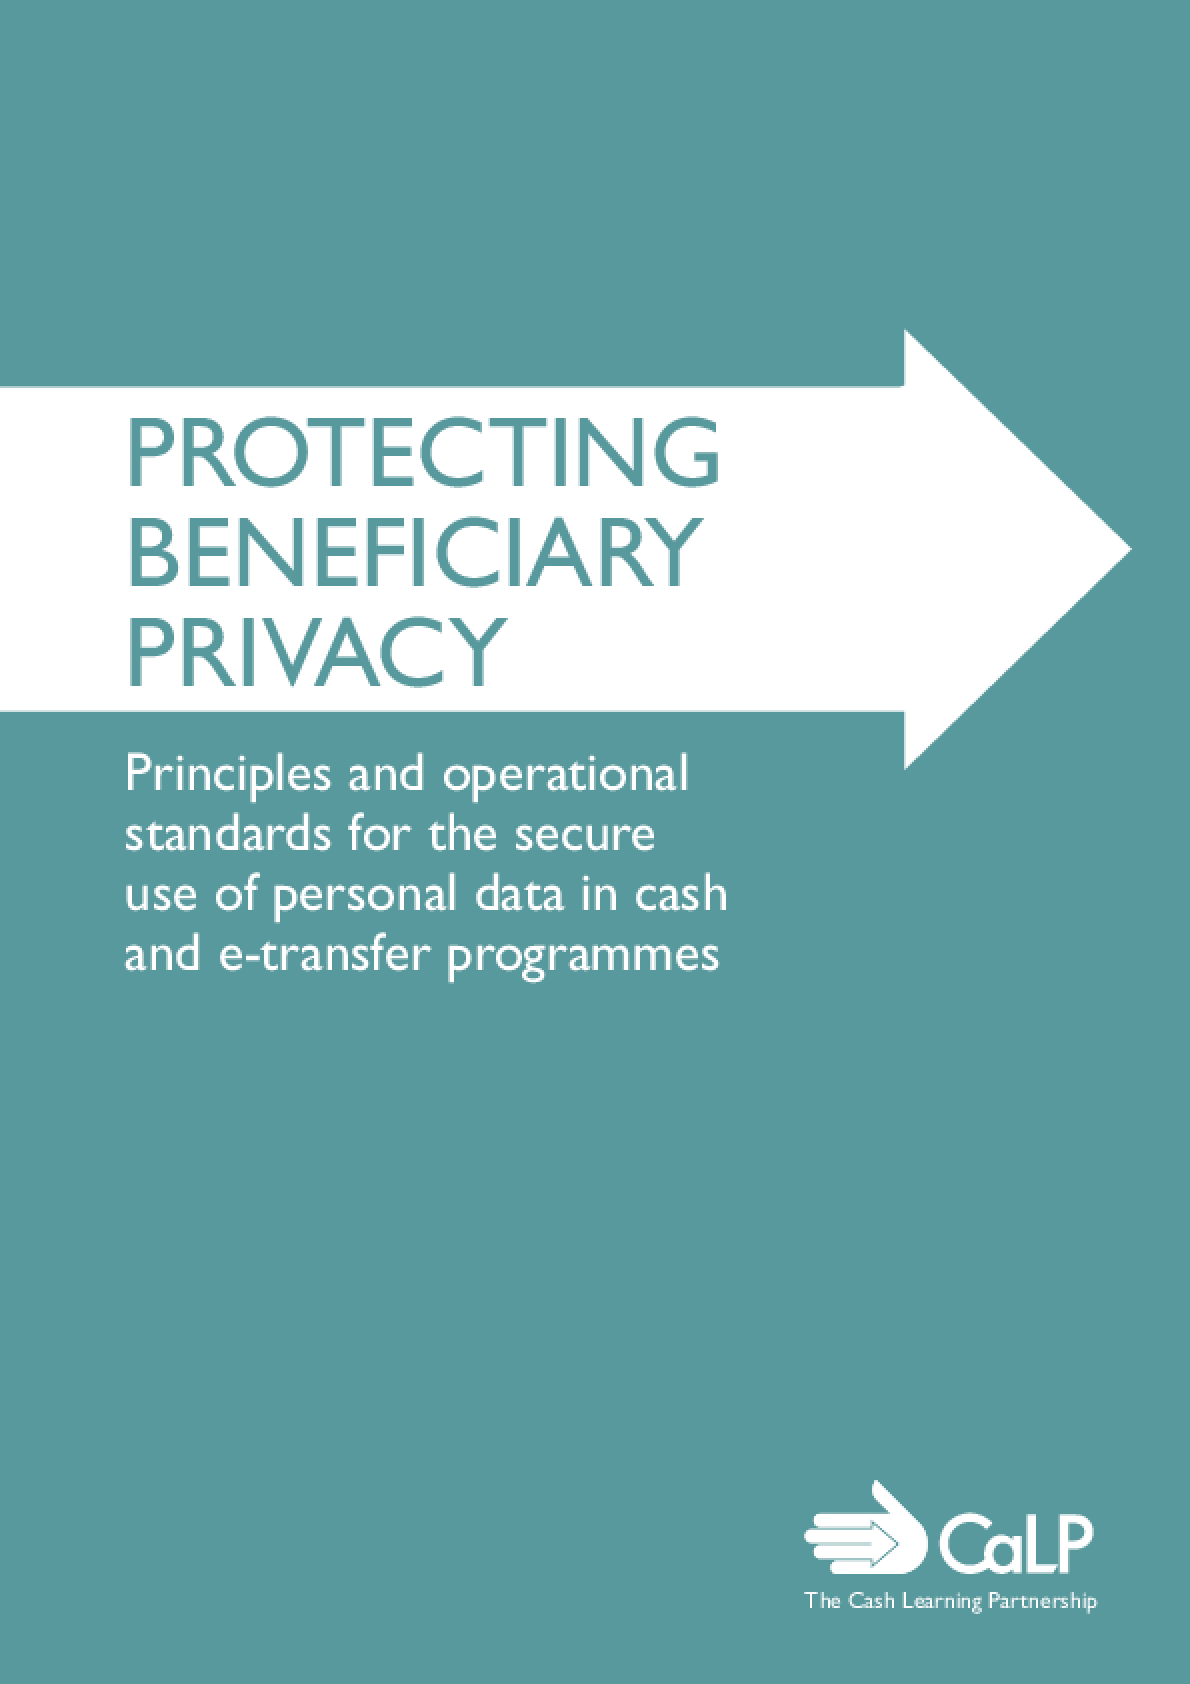 Protecting Beneficiary Privacy: Principles and operational standards for the secure use of personal data in cash and e-transfer programmes